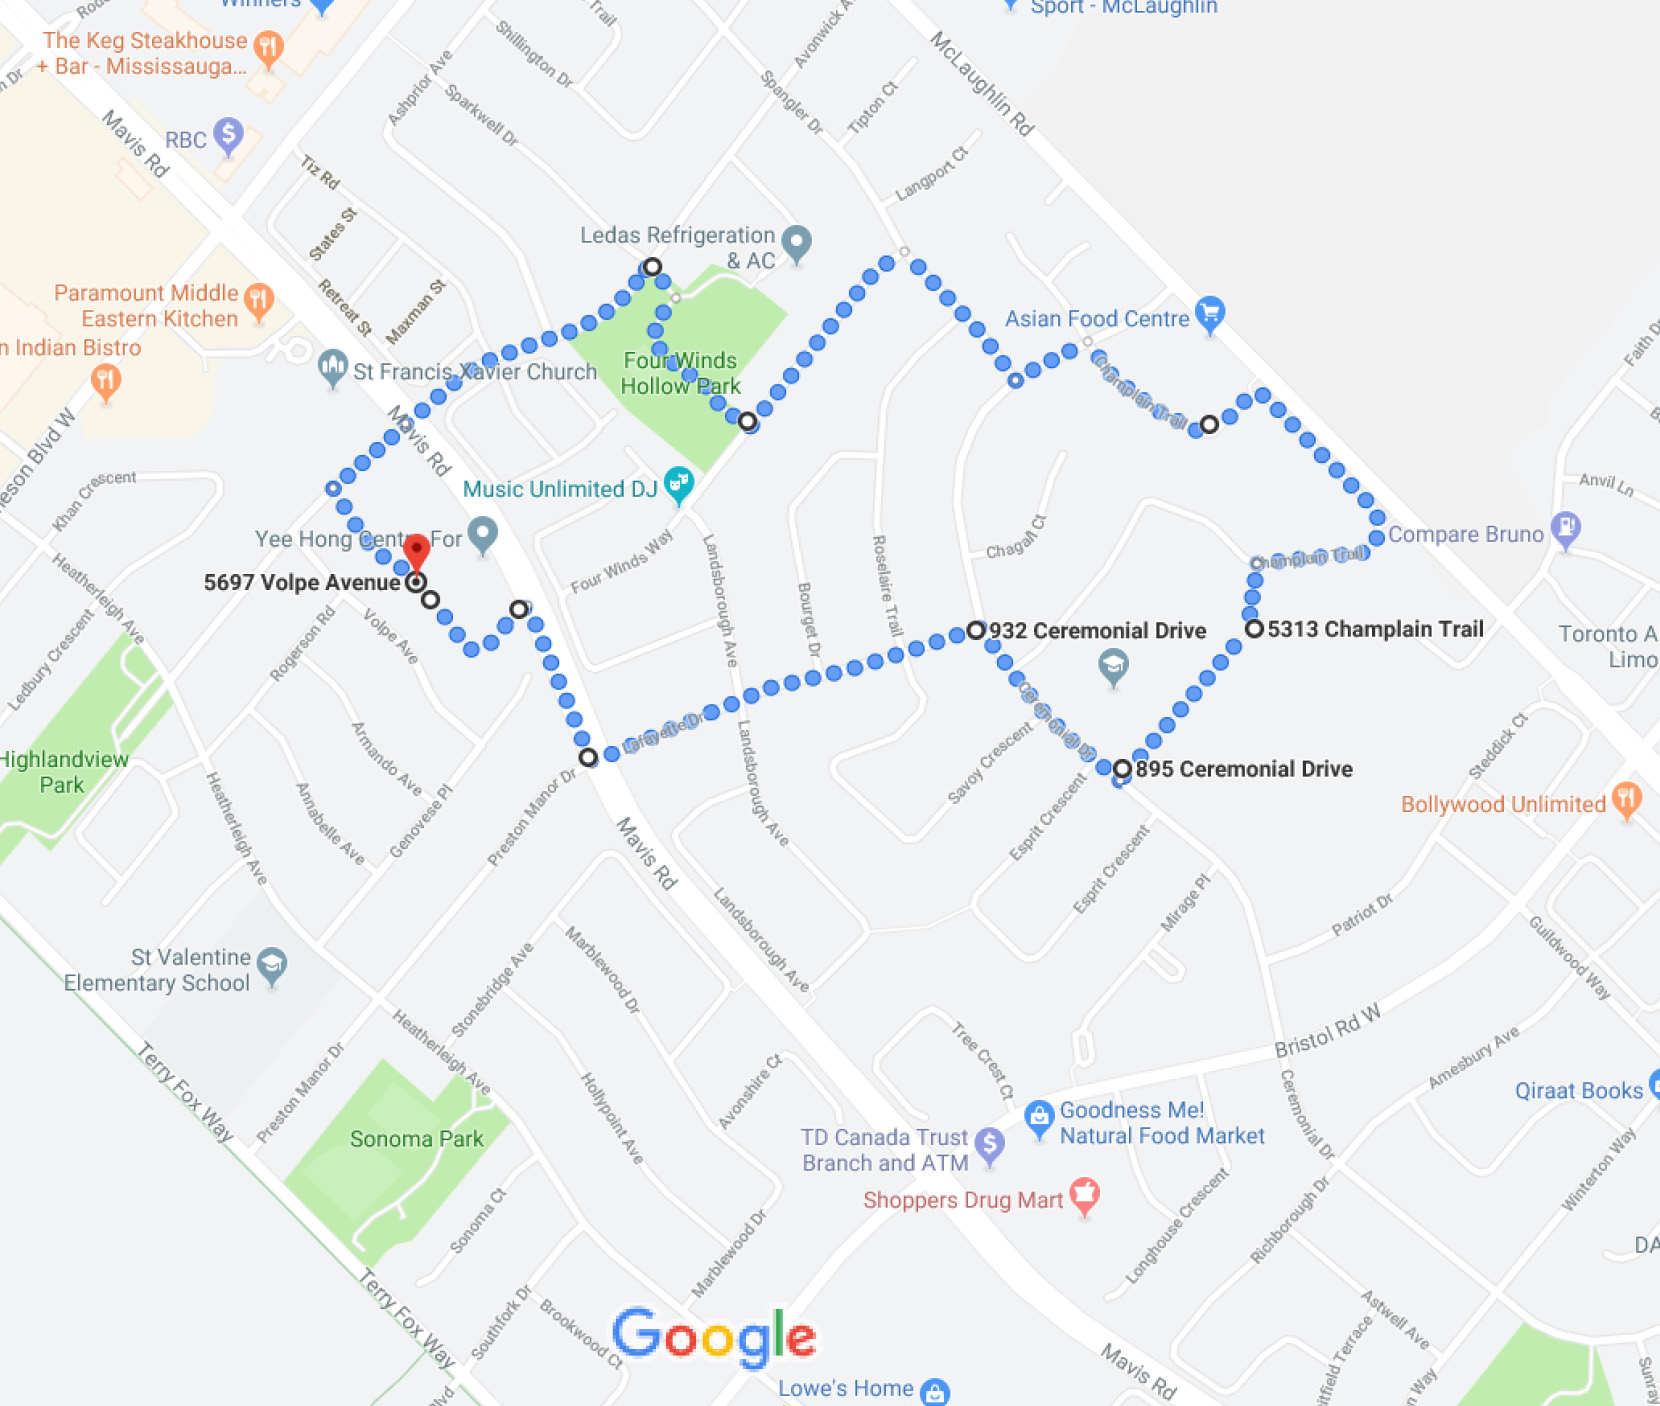 Earth Walk Route 2019 Mississauga